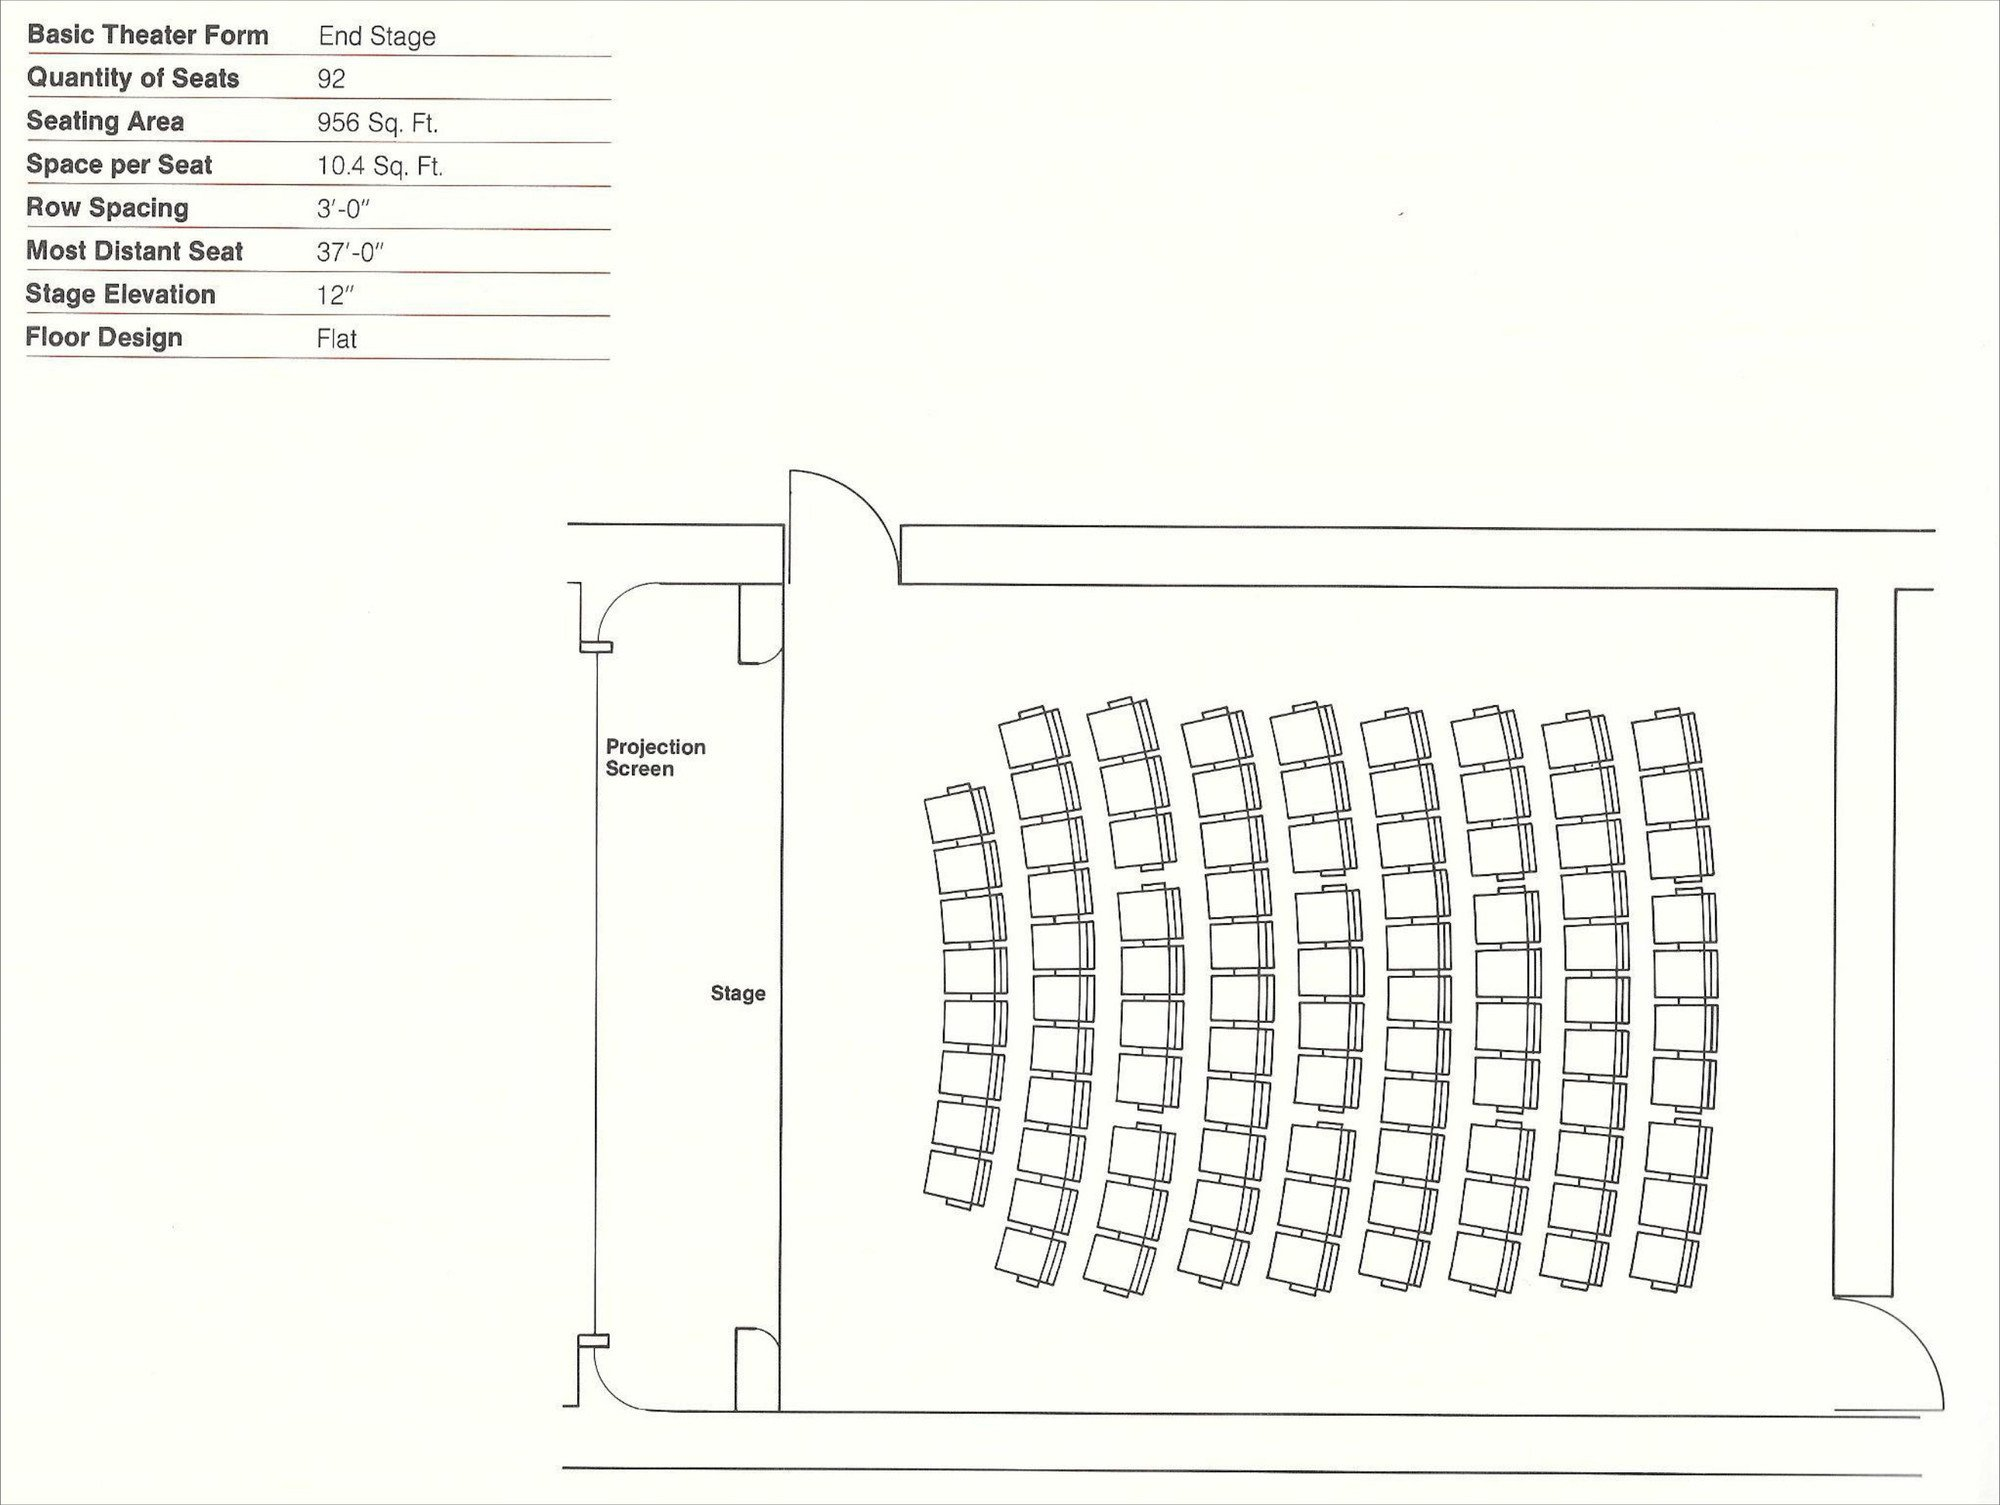 Auditorium Seating Chart Template Gallery Of How to Design theater Seating Shown Through 21